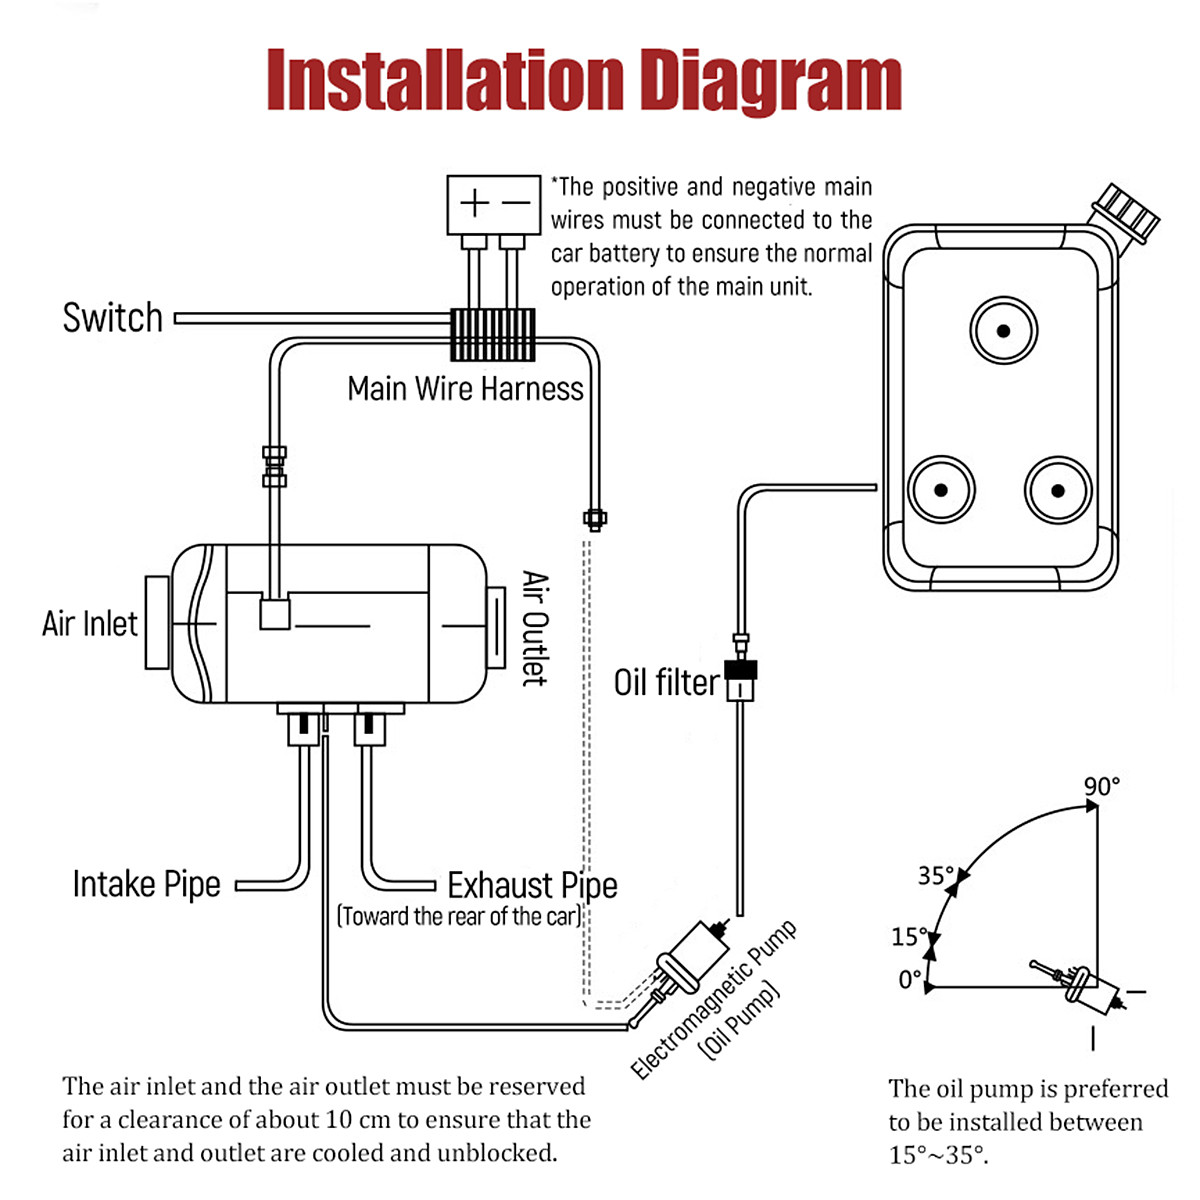 5KW 12V Diesel Air Heater LCD Thermostat with Switch Remote Control Silencer For Motorhome Boat